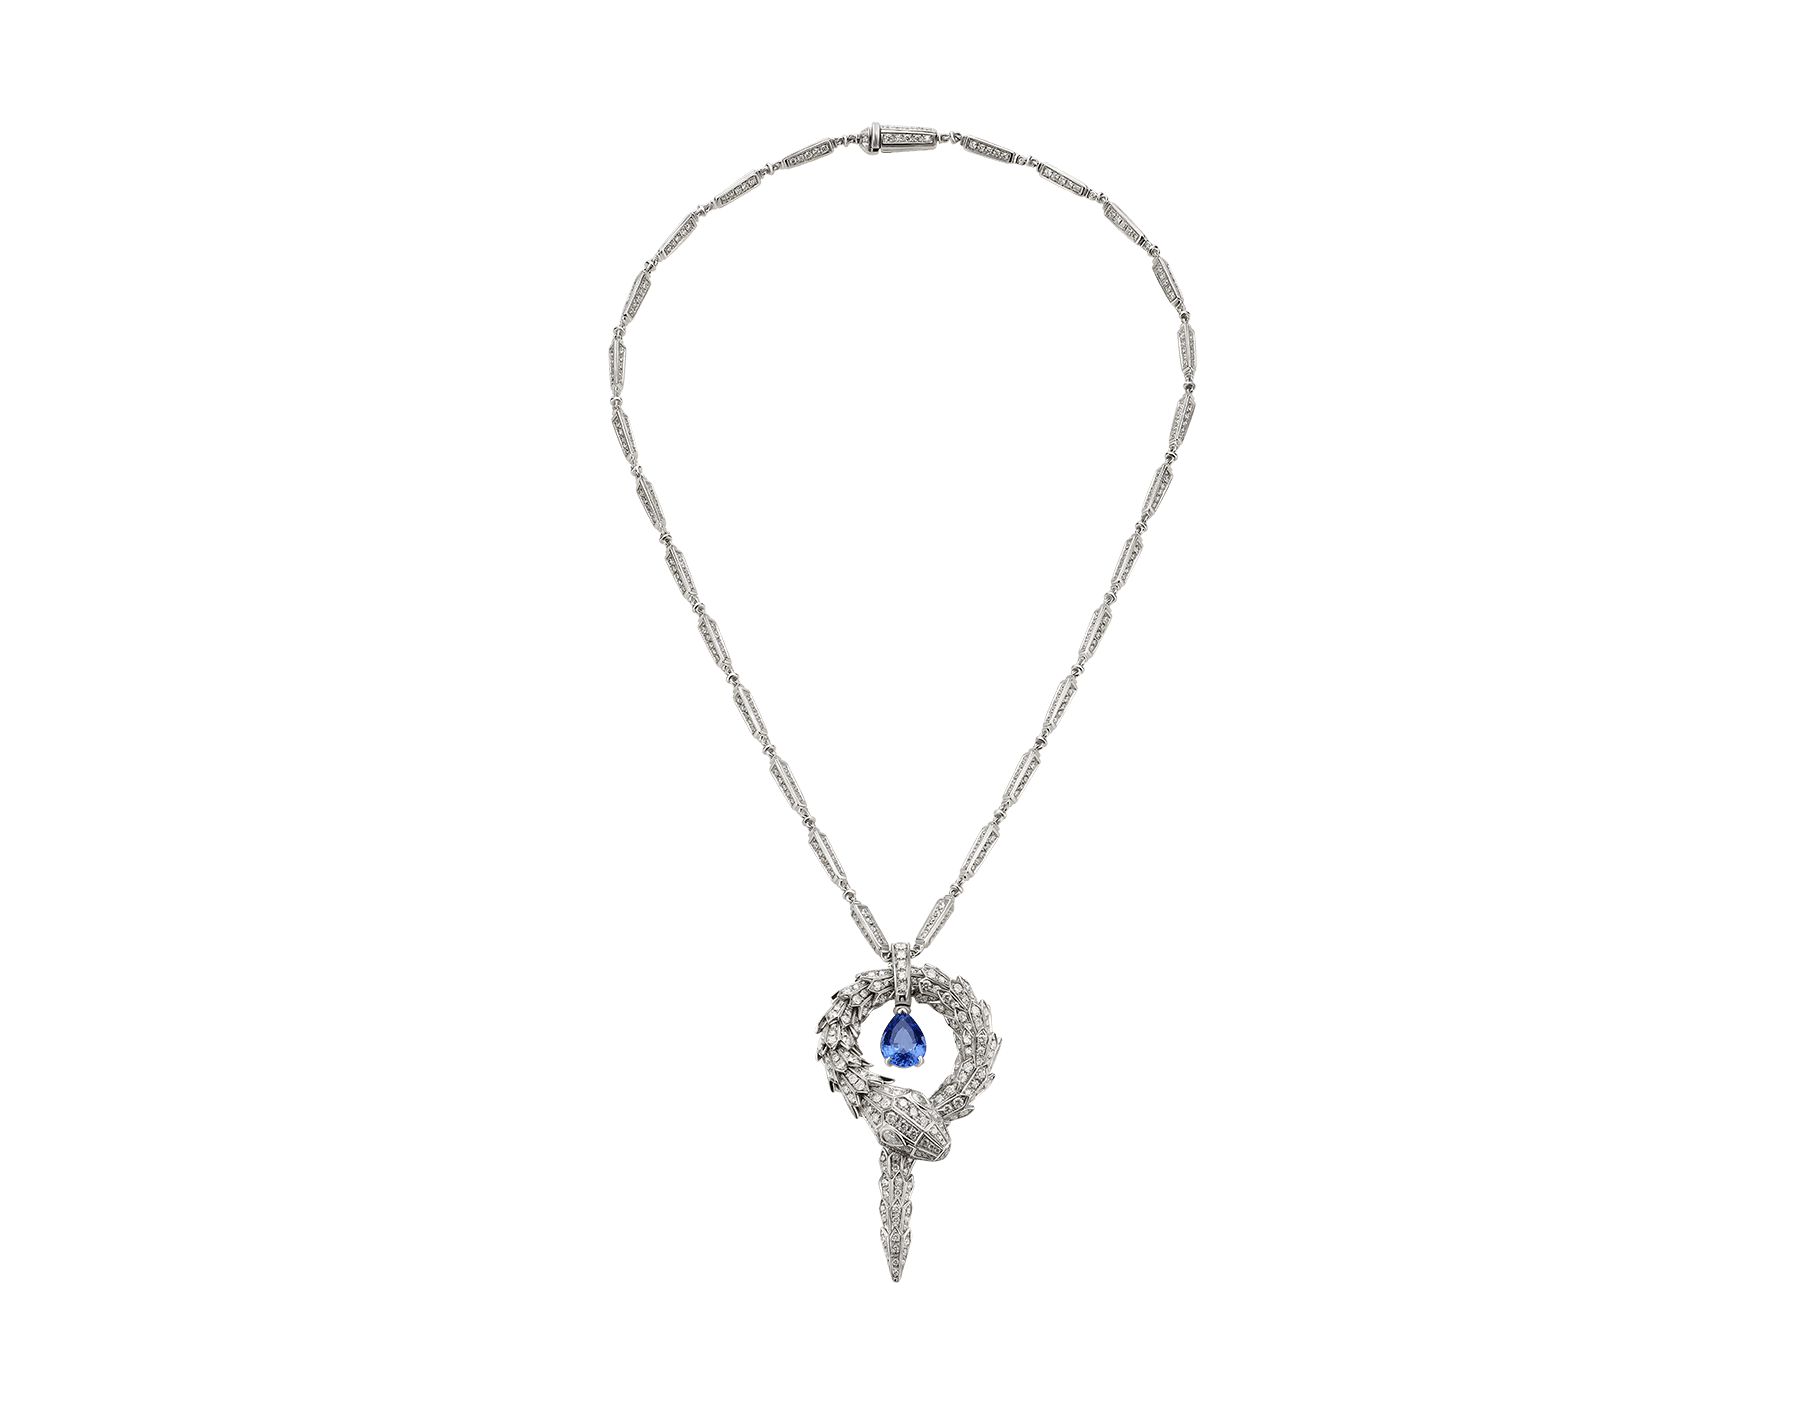 Piccolo pendente Serpenti in oro bianco 18 kt con tanzanite e pavé di diamanti. 354089 image 2